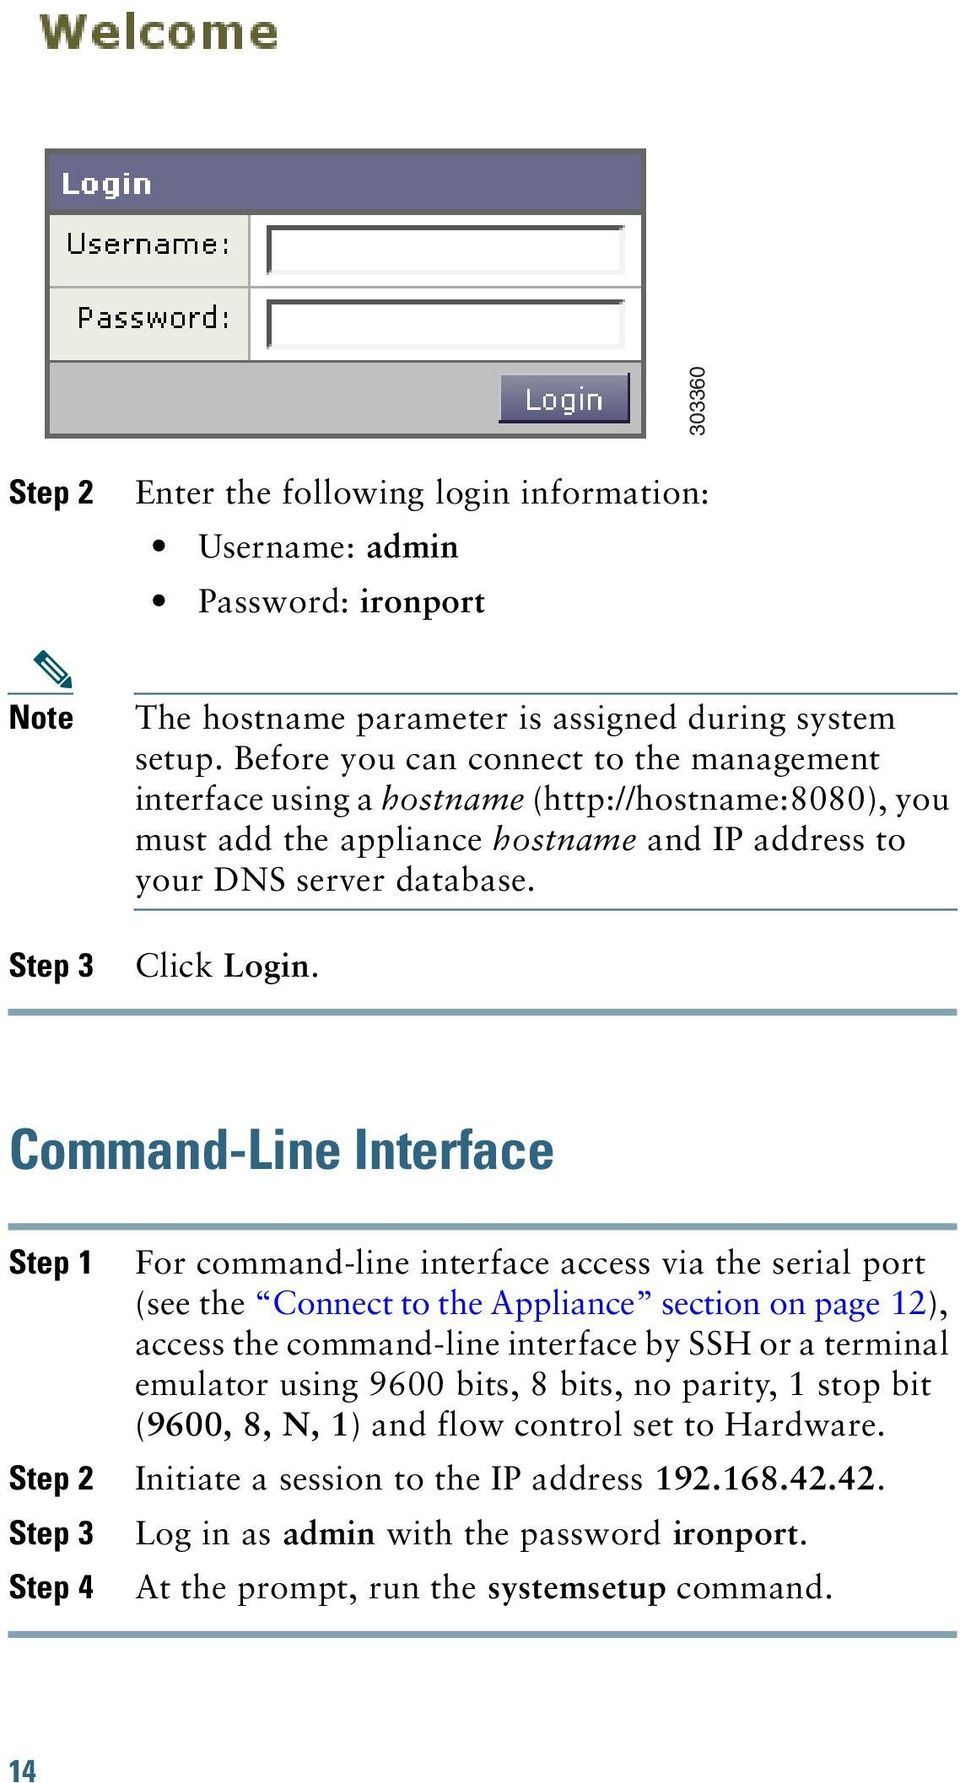 Command-Line Interface Step 1 For command-line interface access via the serial port (see the Connect to the Appliance section on page 12), access the command-line interface by SSH or a terminal